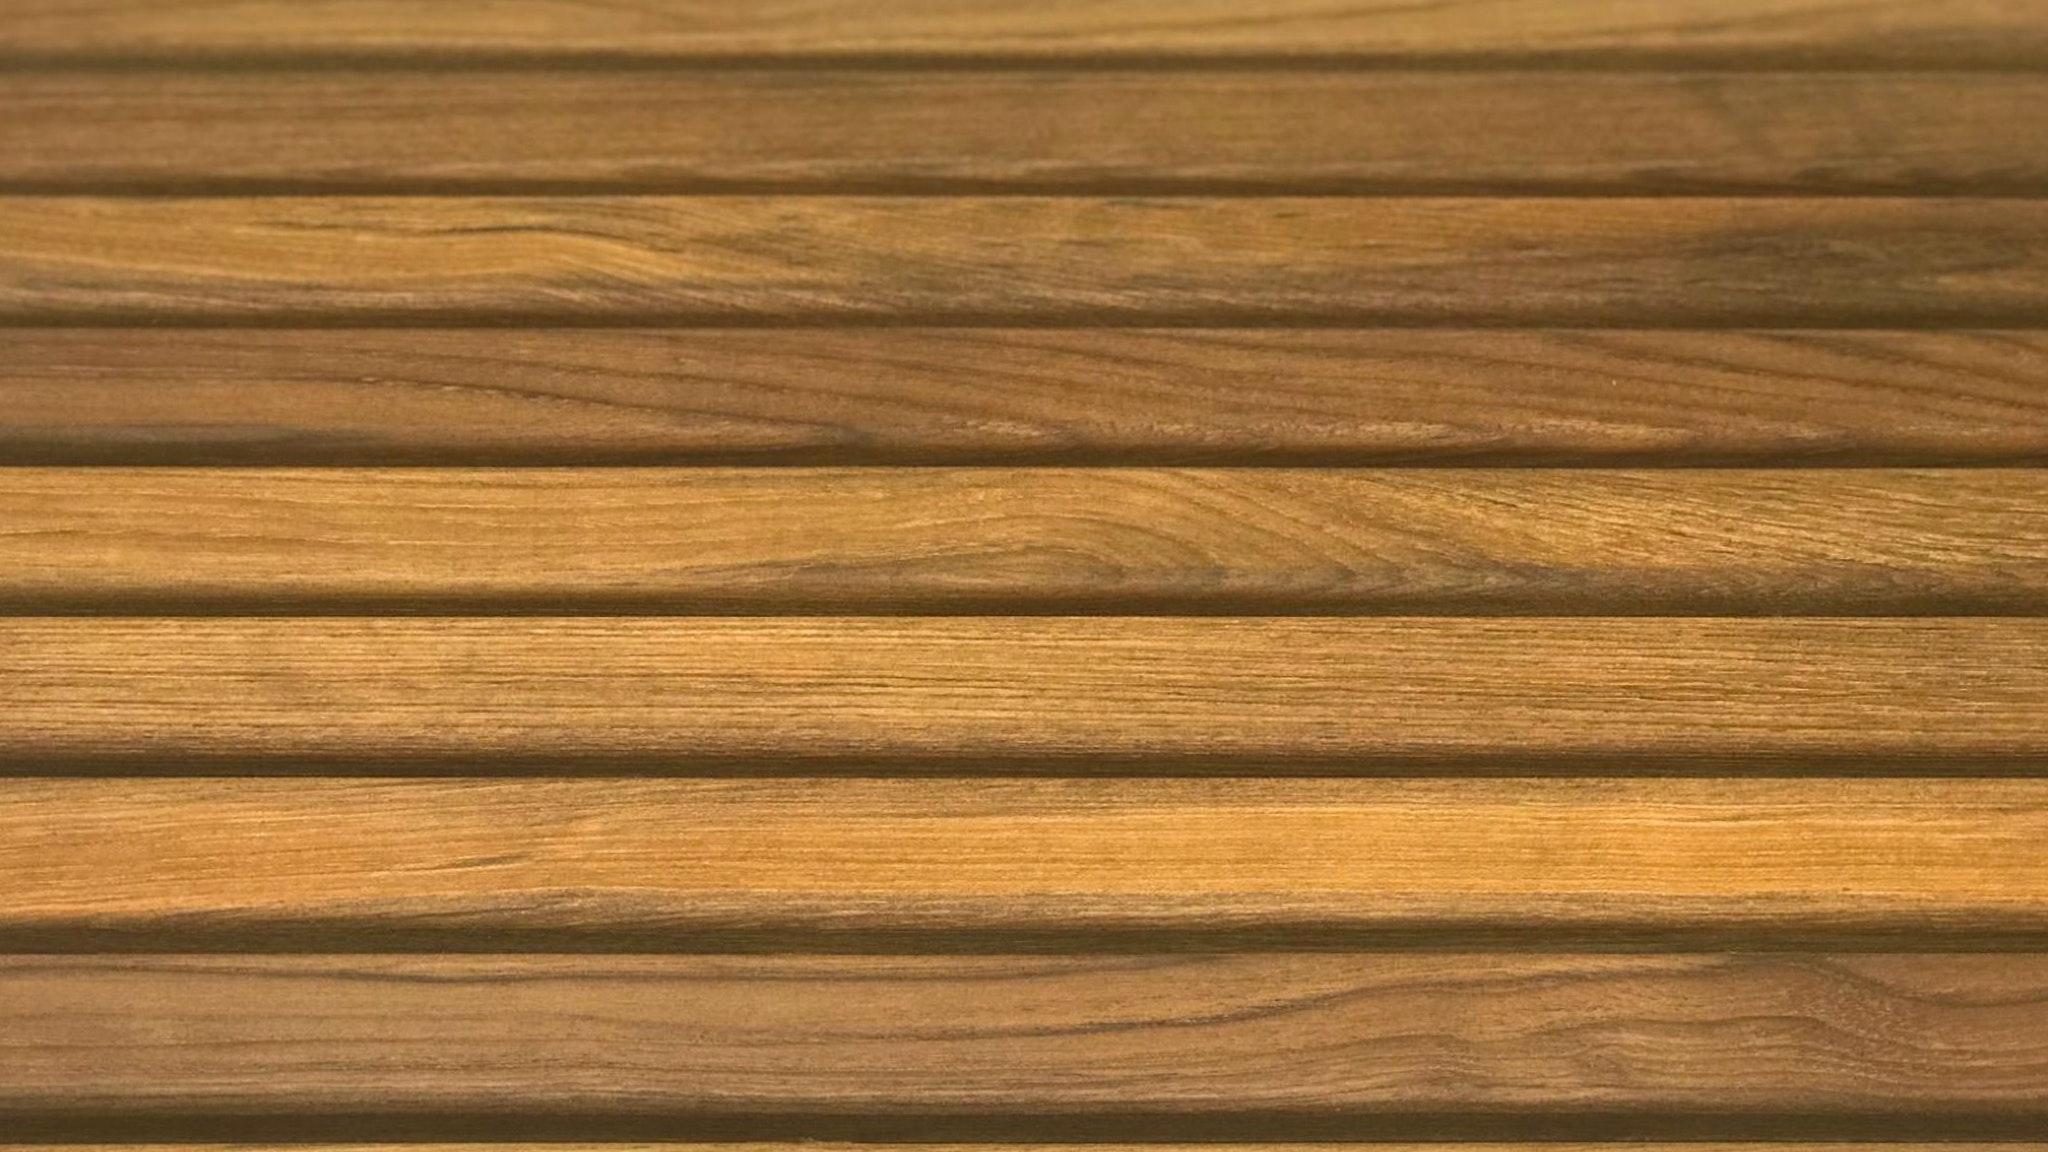 Airstream-Teak-Shower-Mats-Blog-Desktop-Feature